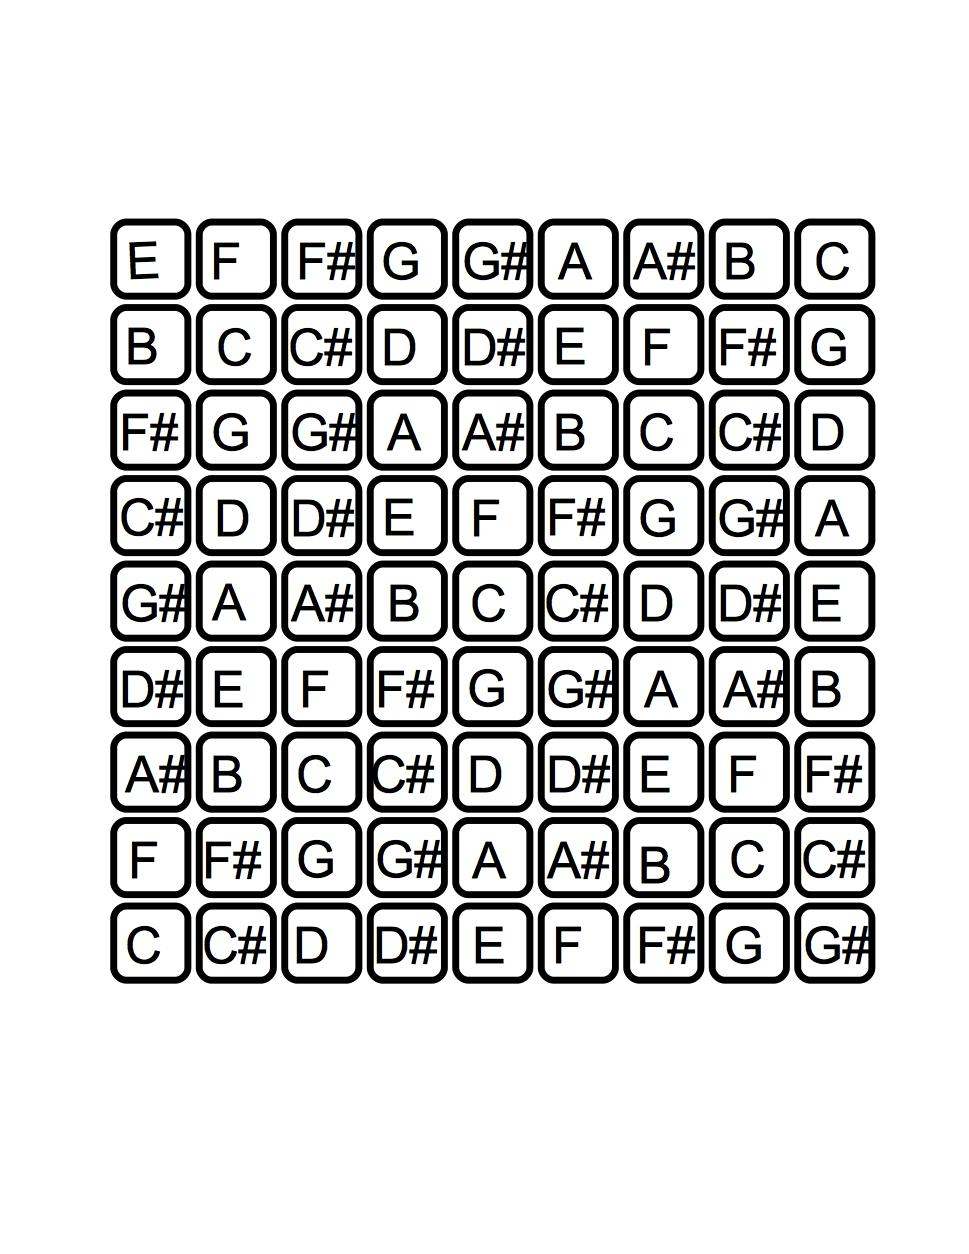 QB 9x9 keypad layout